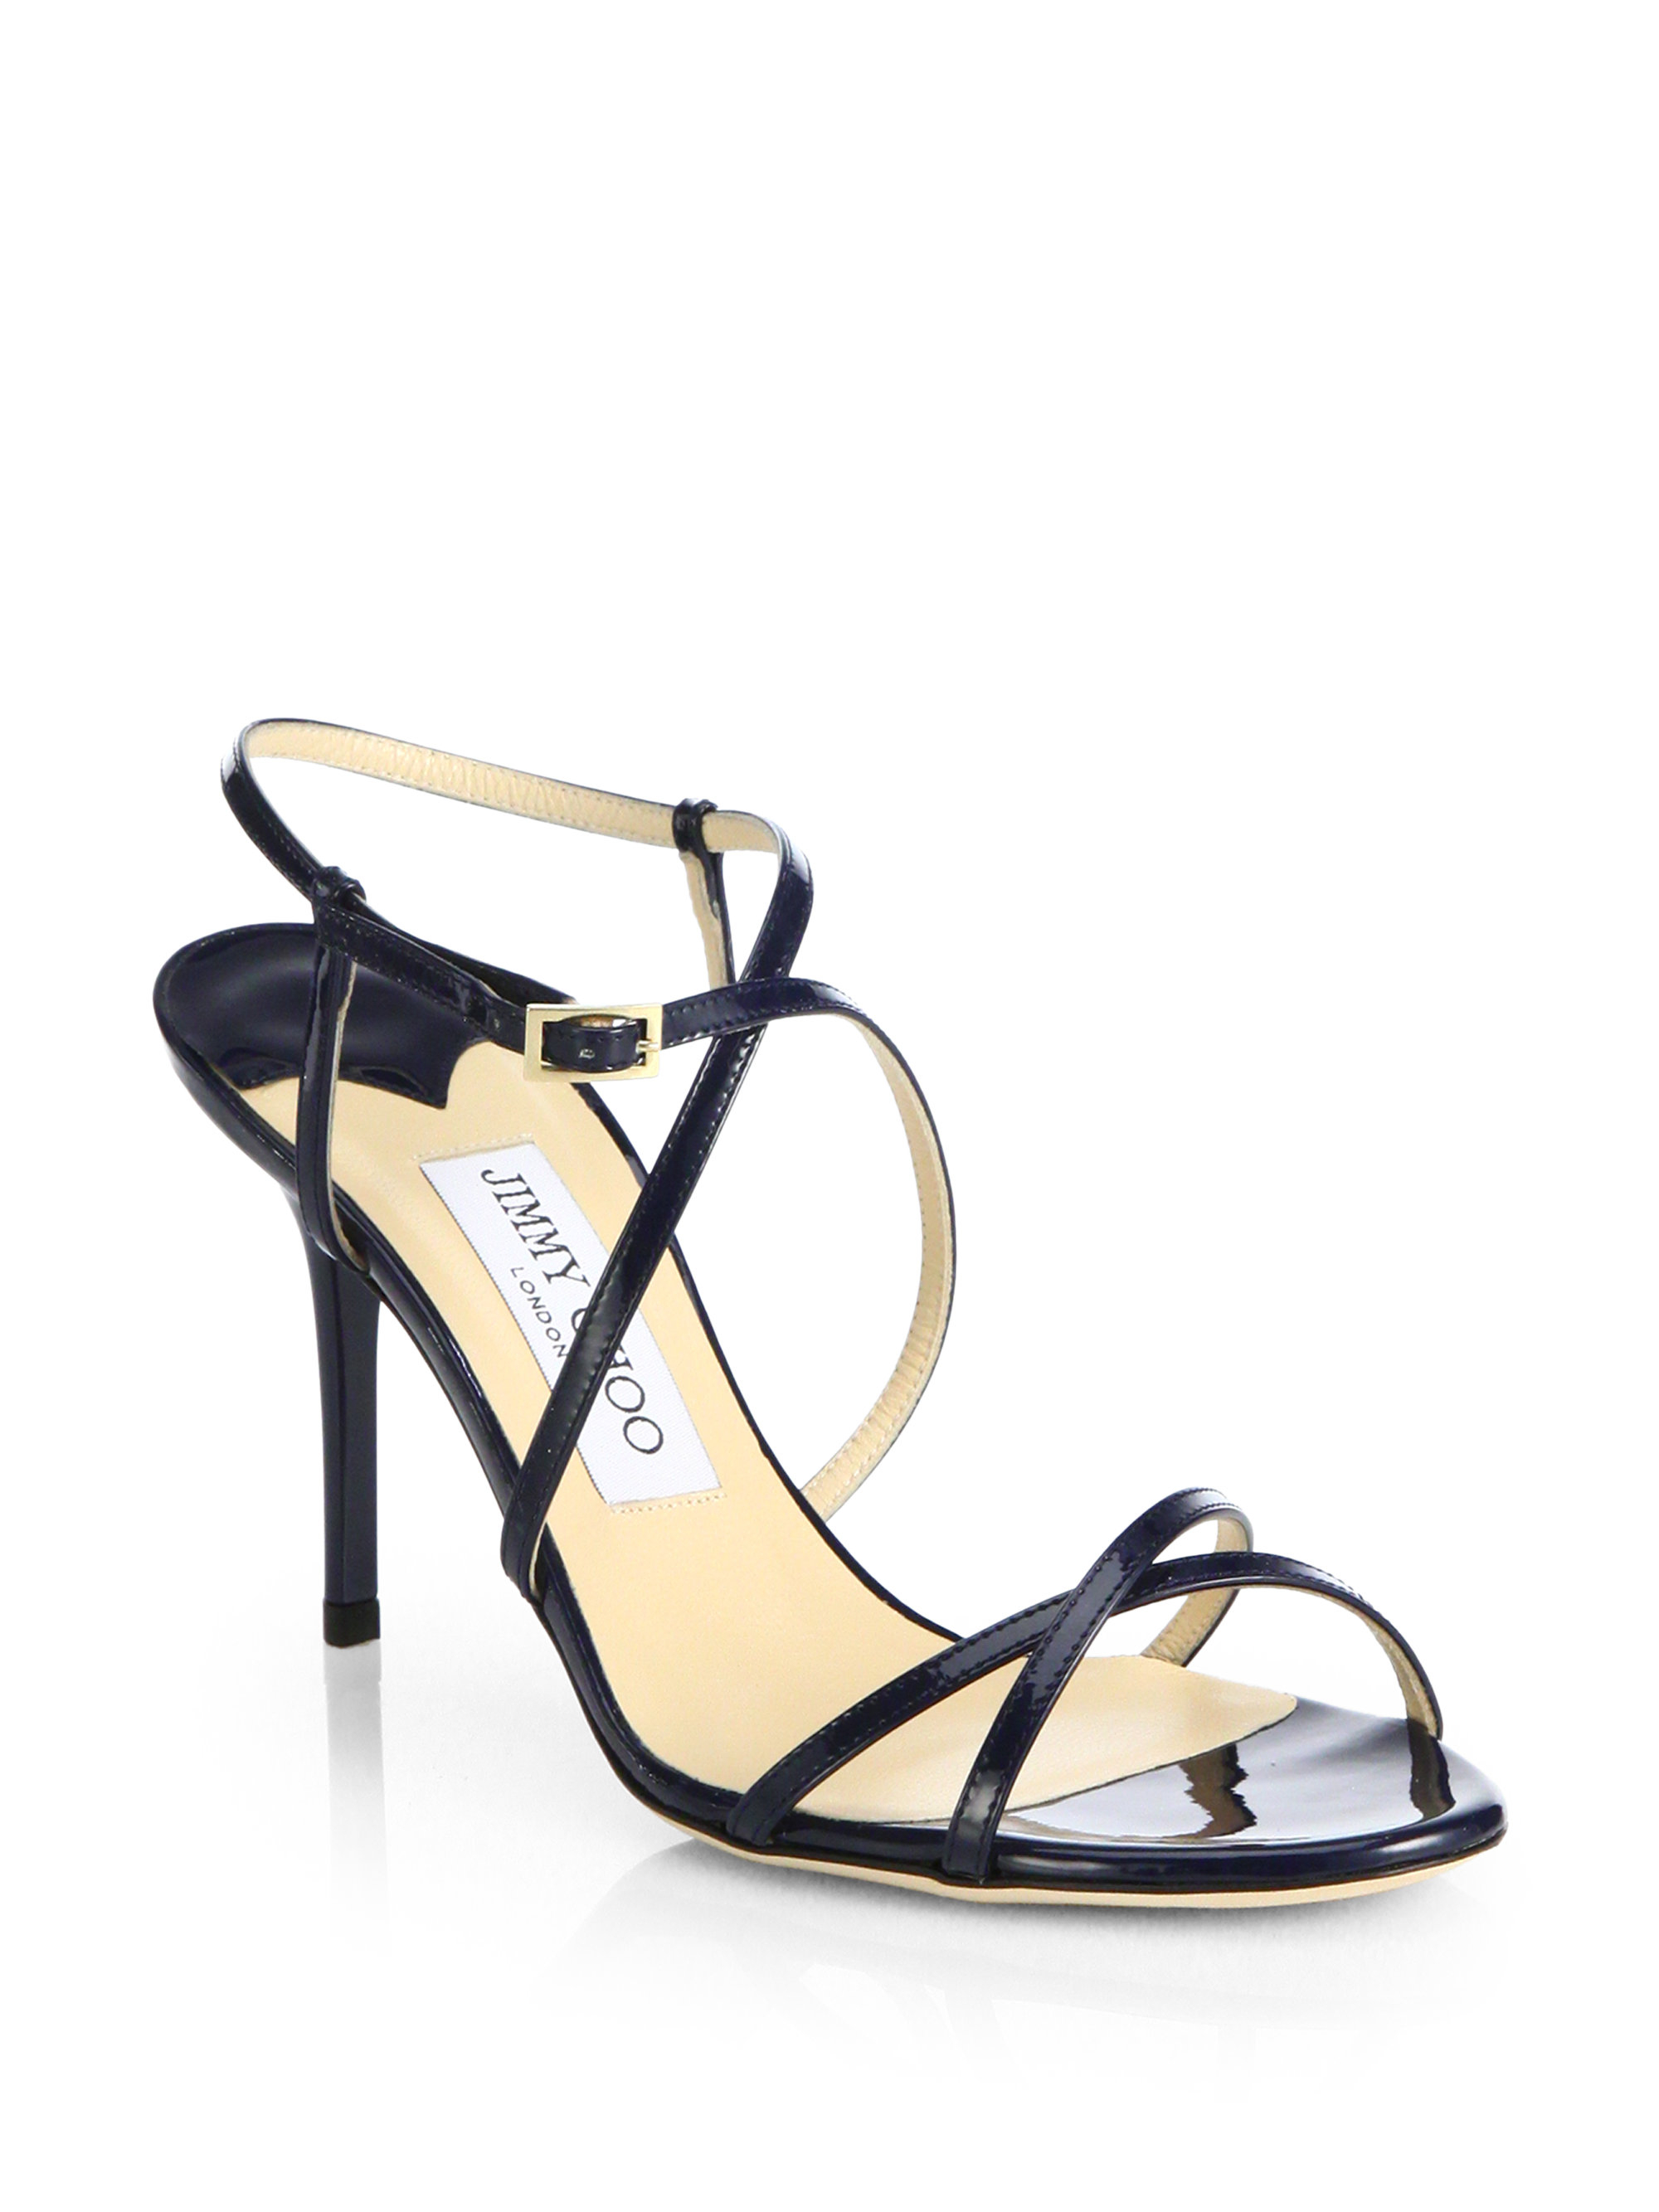 6d241c838ba8d6 Jimmy Choo Elaine Strappy Patent Leather Sandals in Blue - Lyst